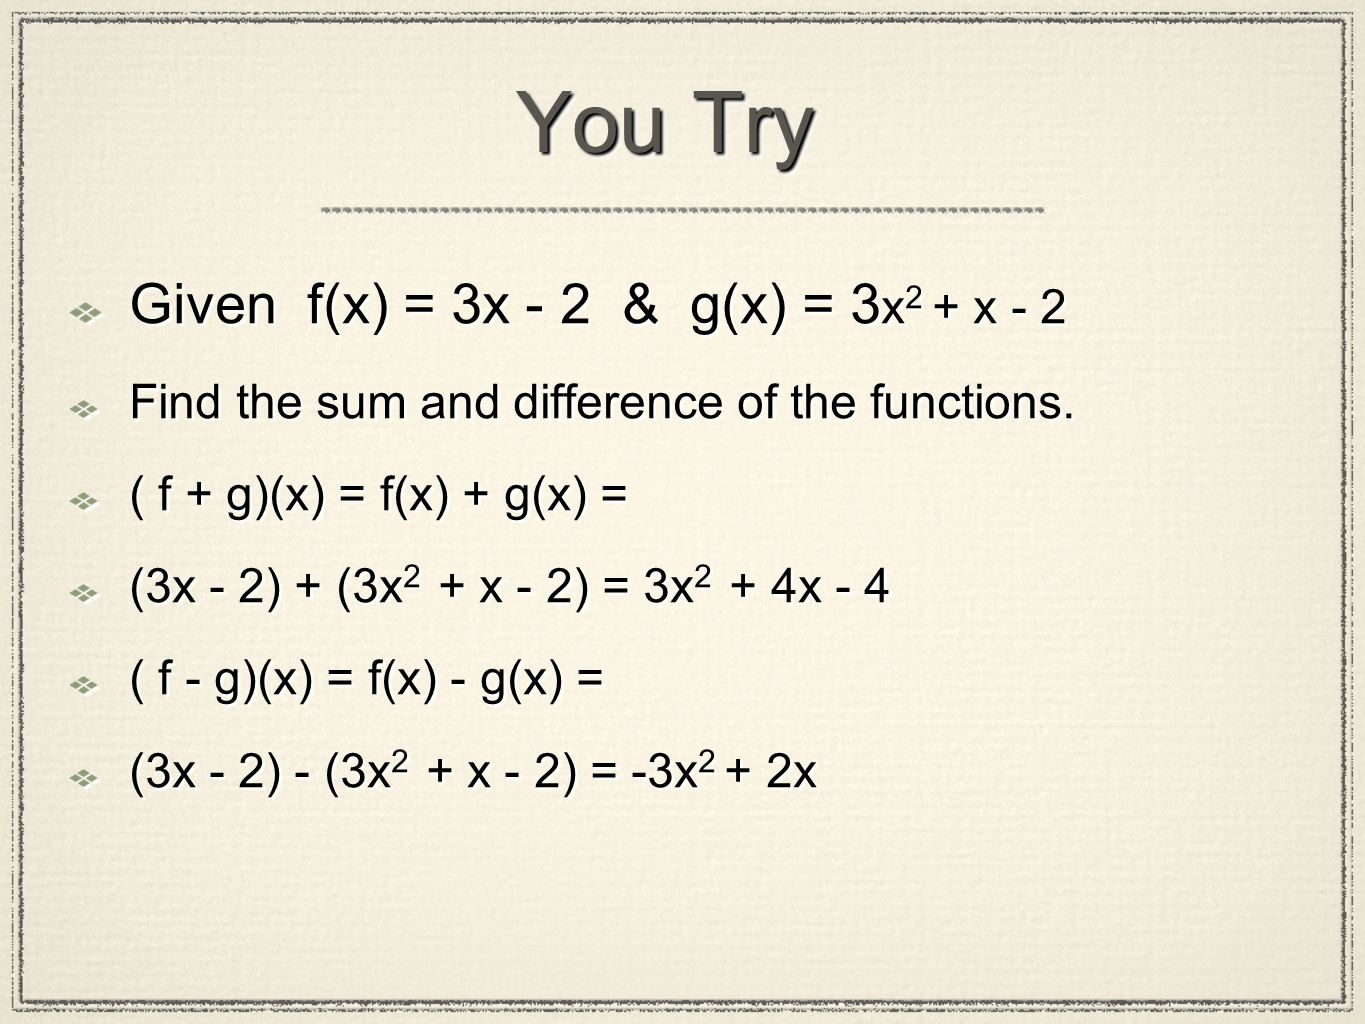 You Try Given f(x) = 3x - 2 & g(x) = 3x2 + x - 2